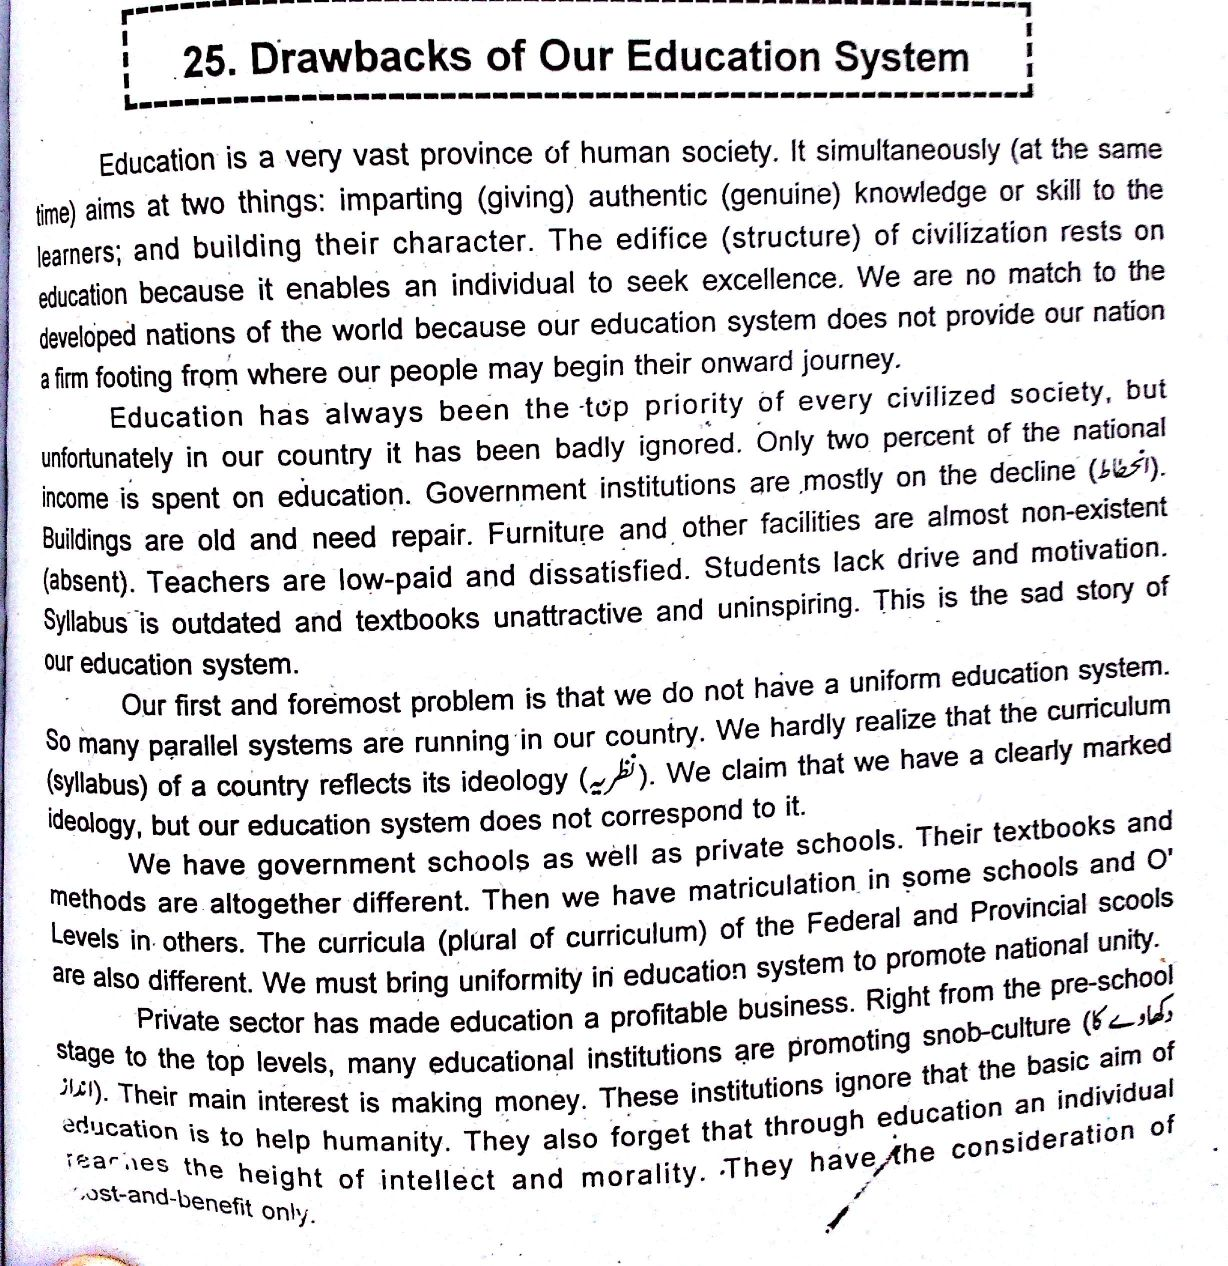 argumentative essay education system Argument essay - education reform: a clear path education reform: a clear path forward the year is that our education system has changed little since.